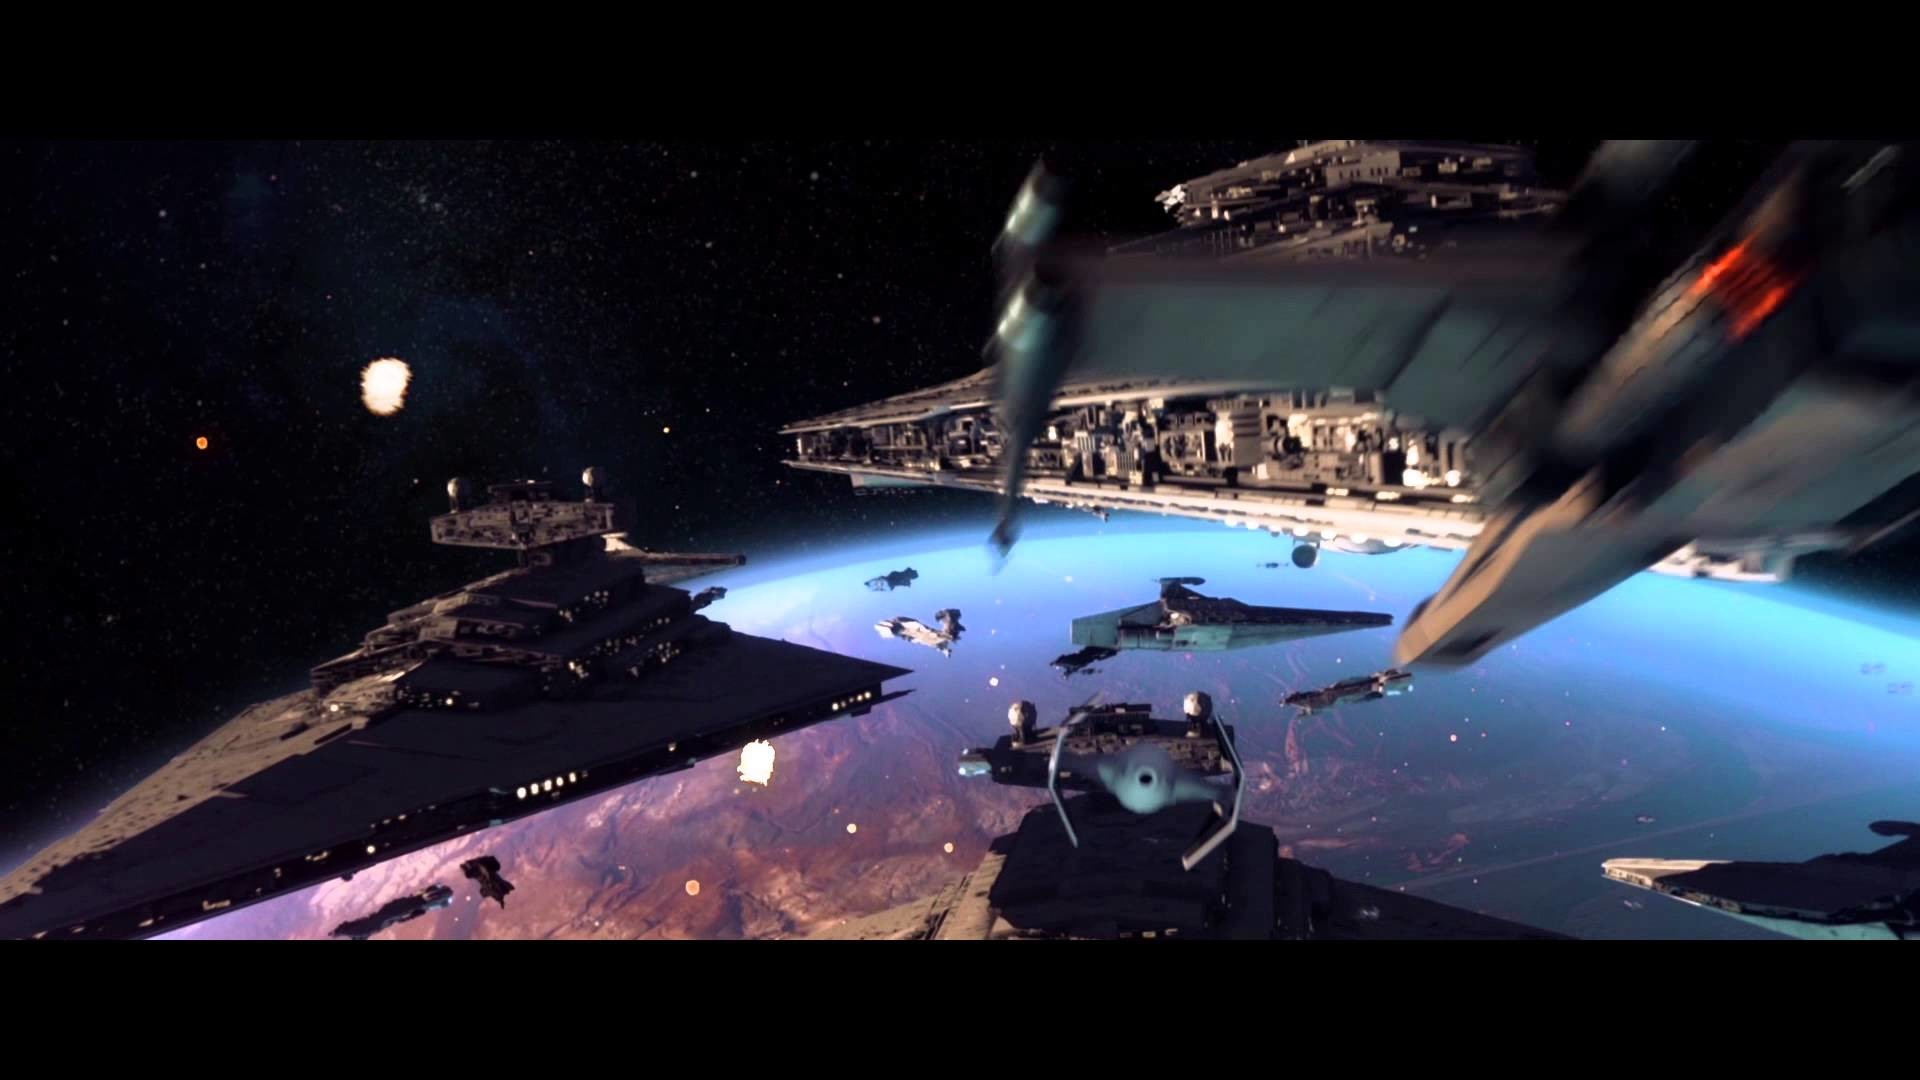 STAR WARS space battle test – After Effects, Element 3D, Trapcode  Particular – YouTube